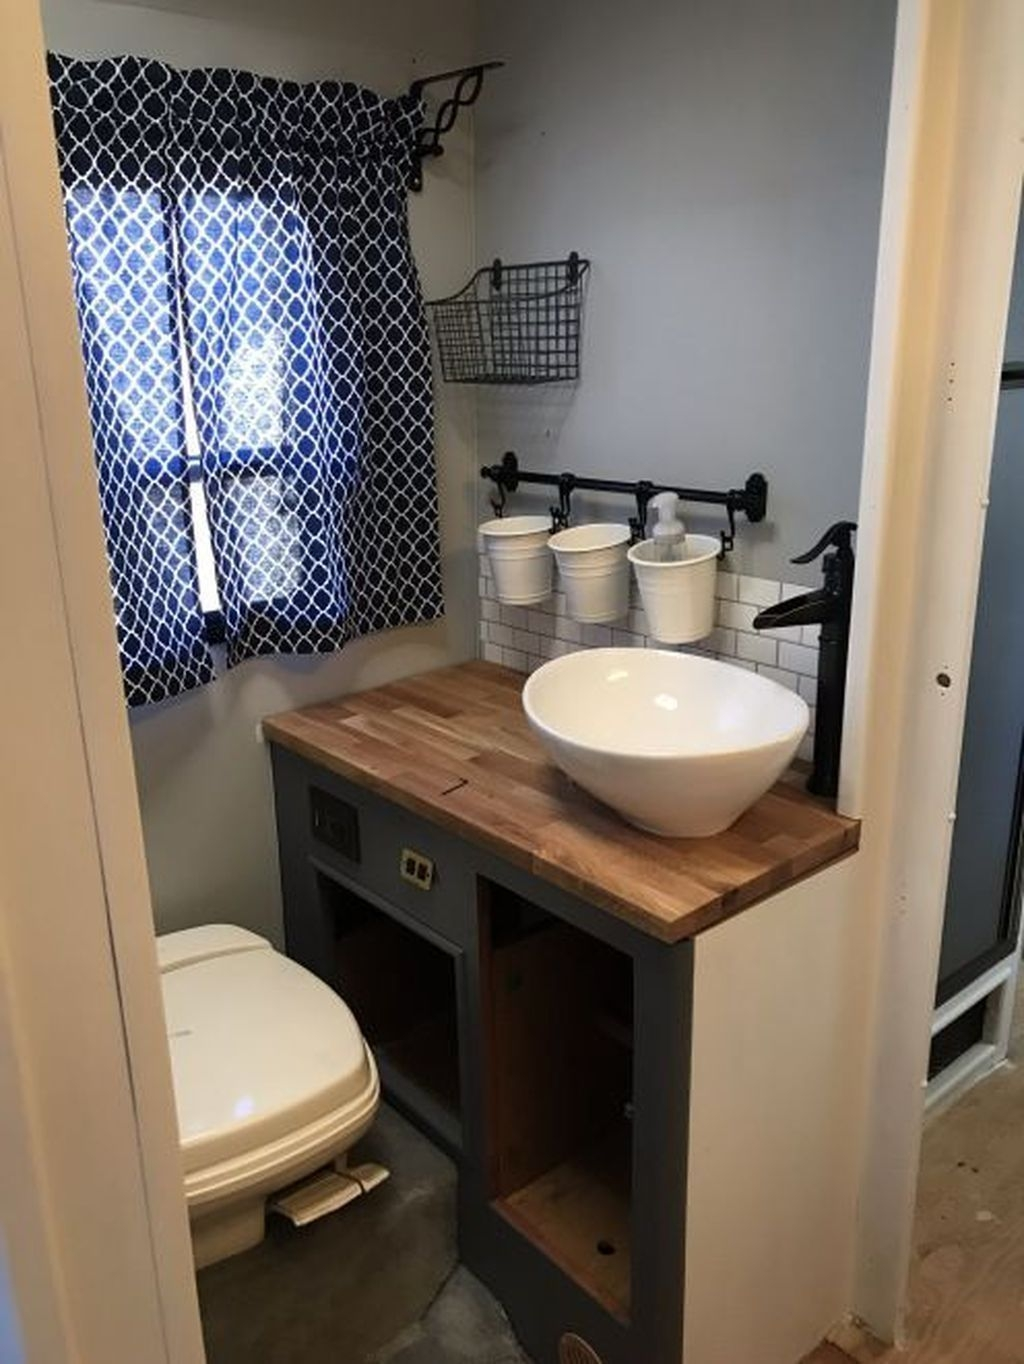 Fascinating Rv Remodel Ideas For Bathroom On A Budget26